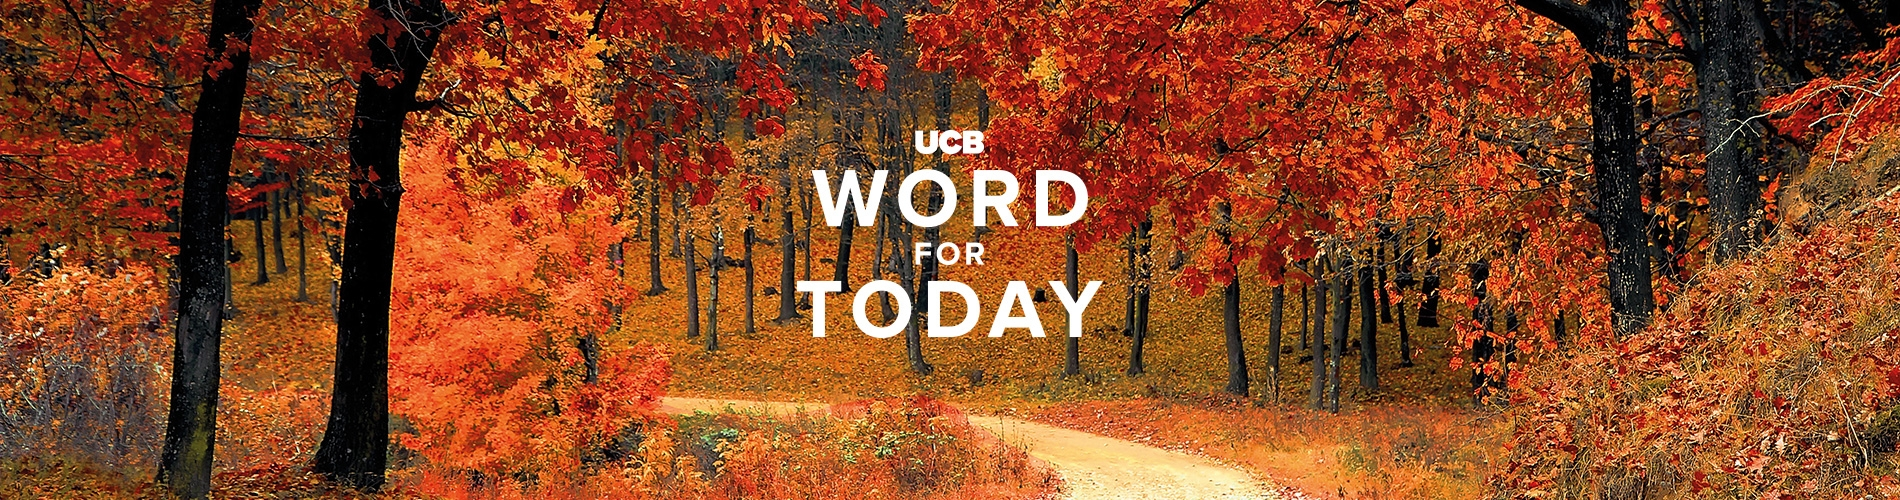 The UCB Word For Today